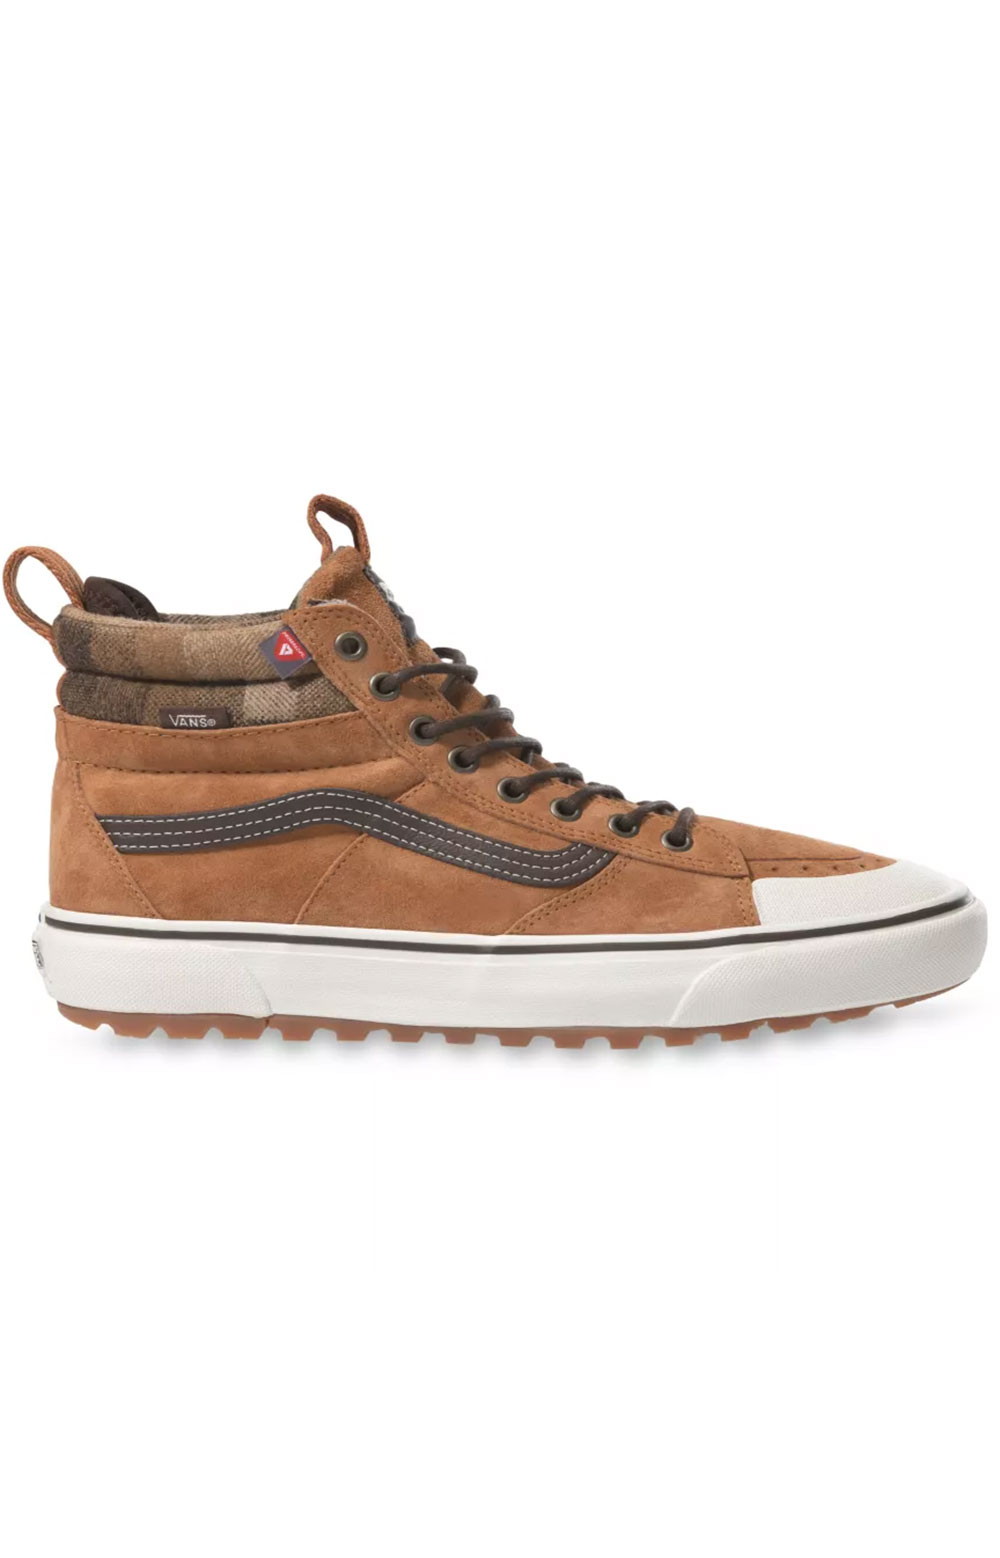 (P3IRIZ) SK8-Hi MTE 2.0 DX Shoes - Glazed Ginger/Marshmallow